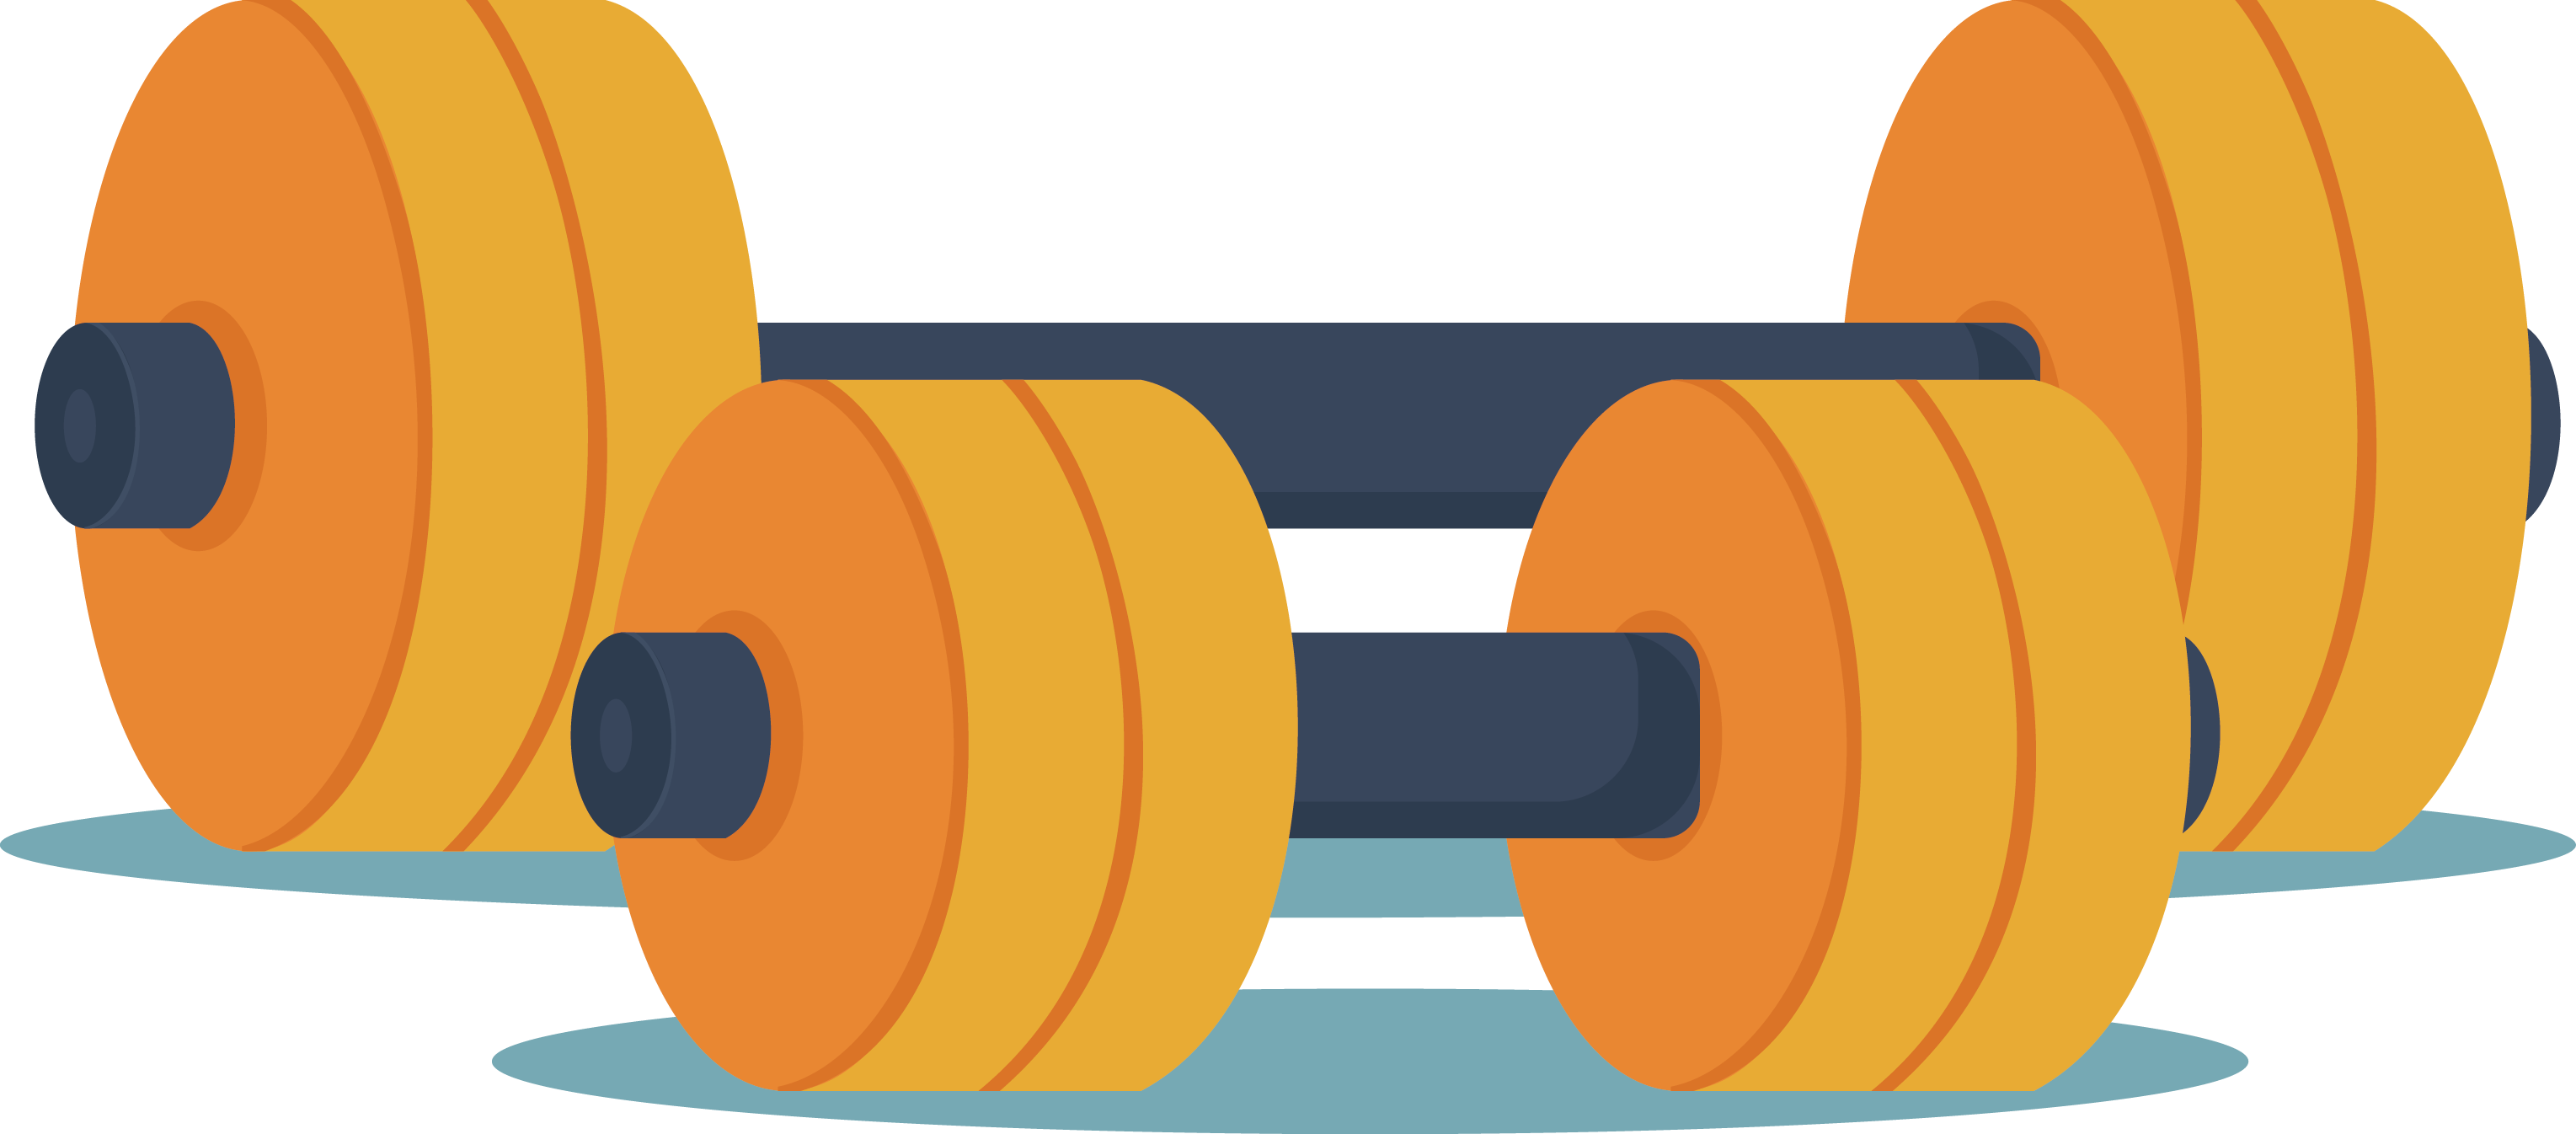 vector royalty free stock Weightlifting Clipart at GetDrawings